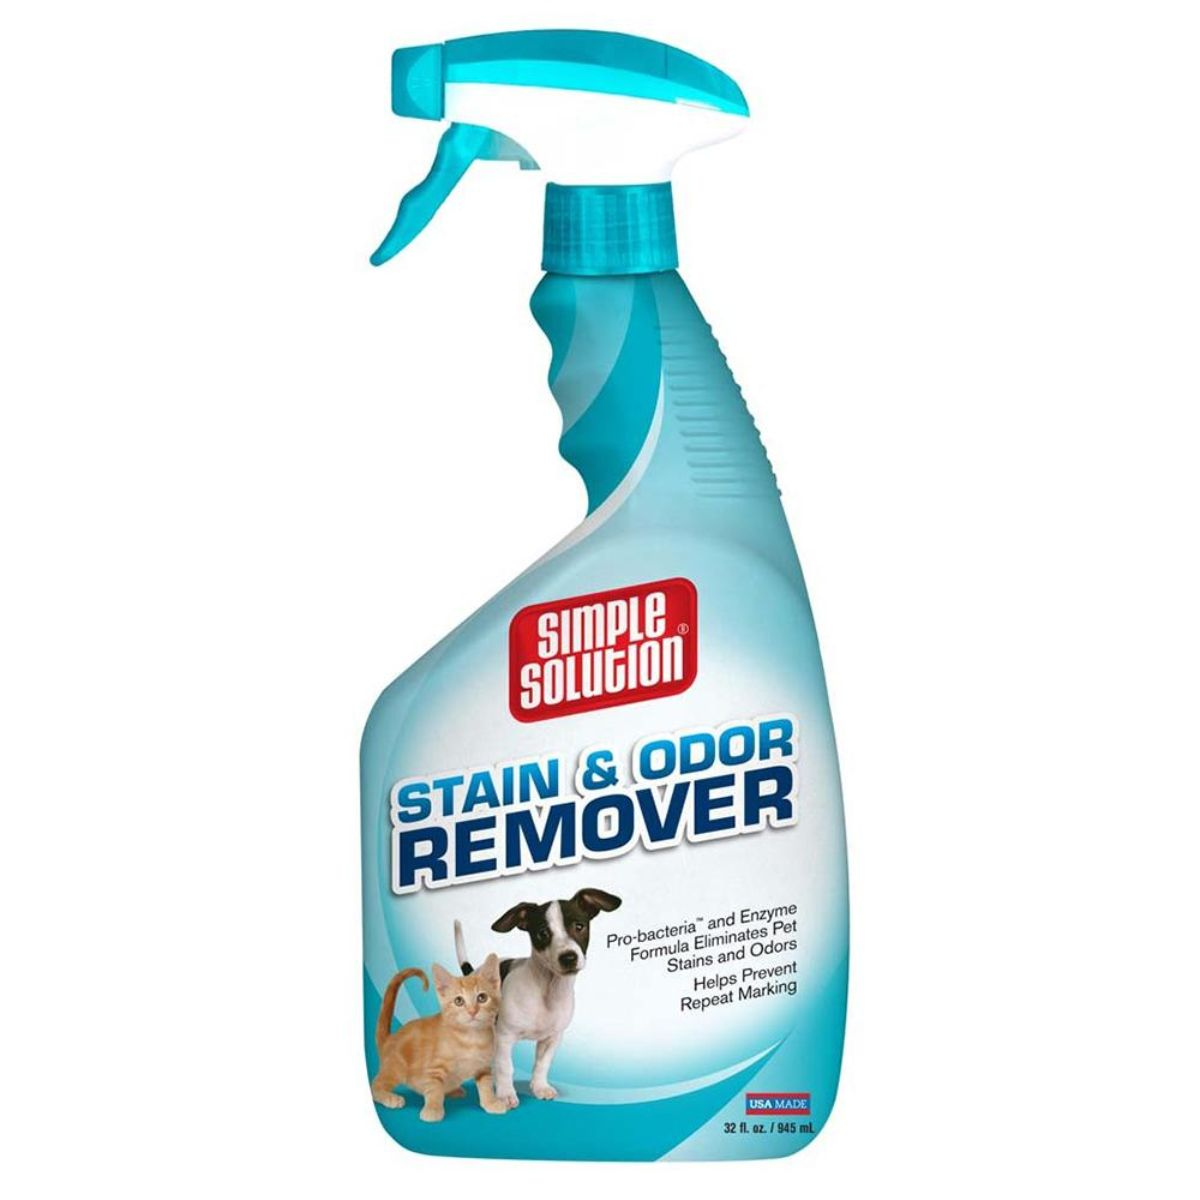 Simple Solution Dog Stain Odor Remover Spray Bottle - 945 ml